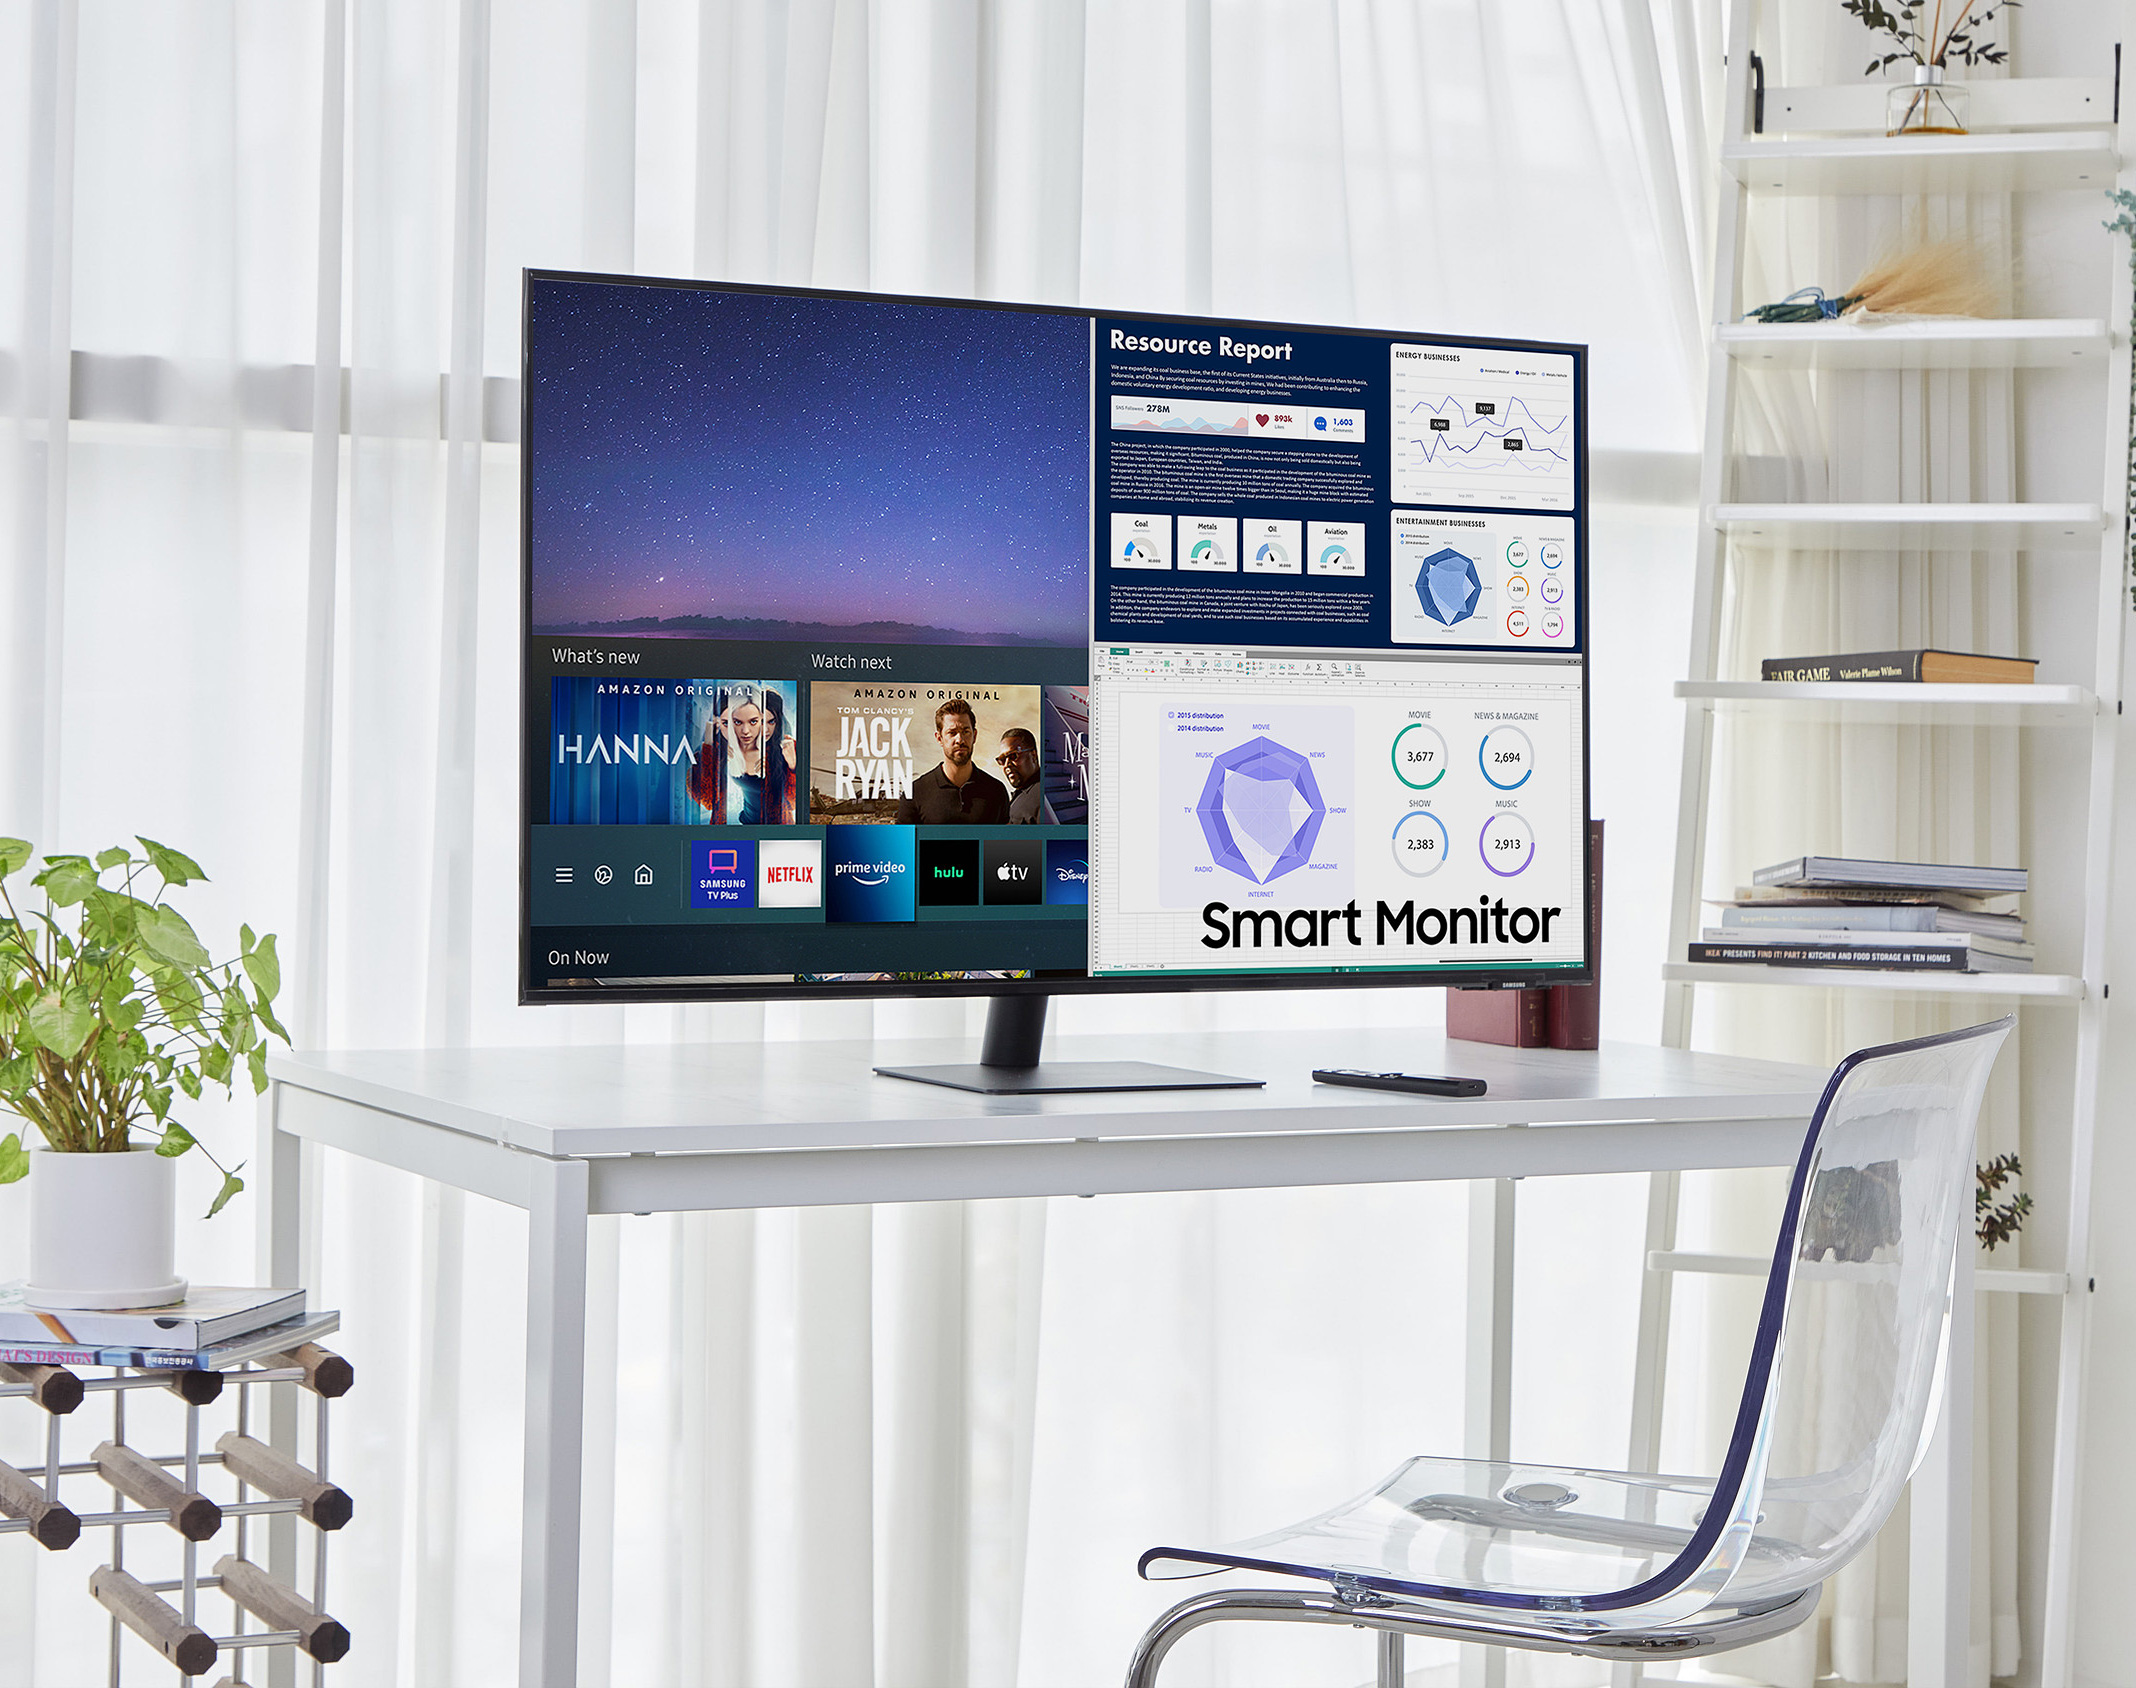 Samsung Goes Big with 43-Inch M7 Smart Monitor at werd.com